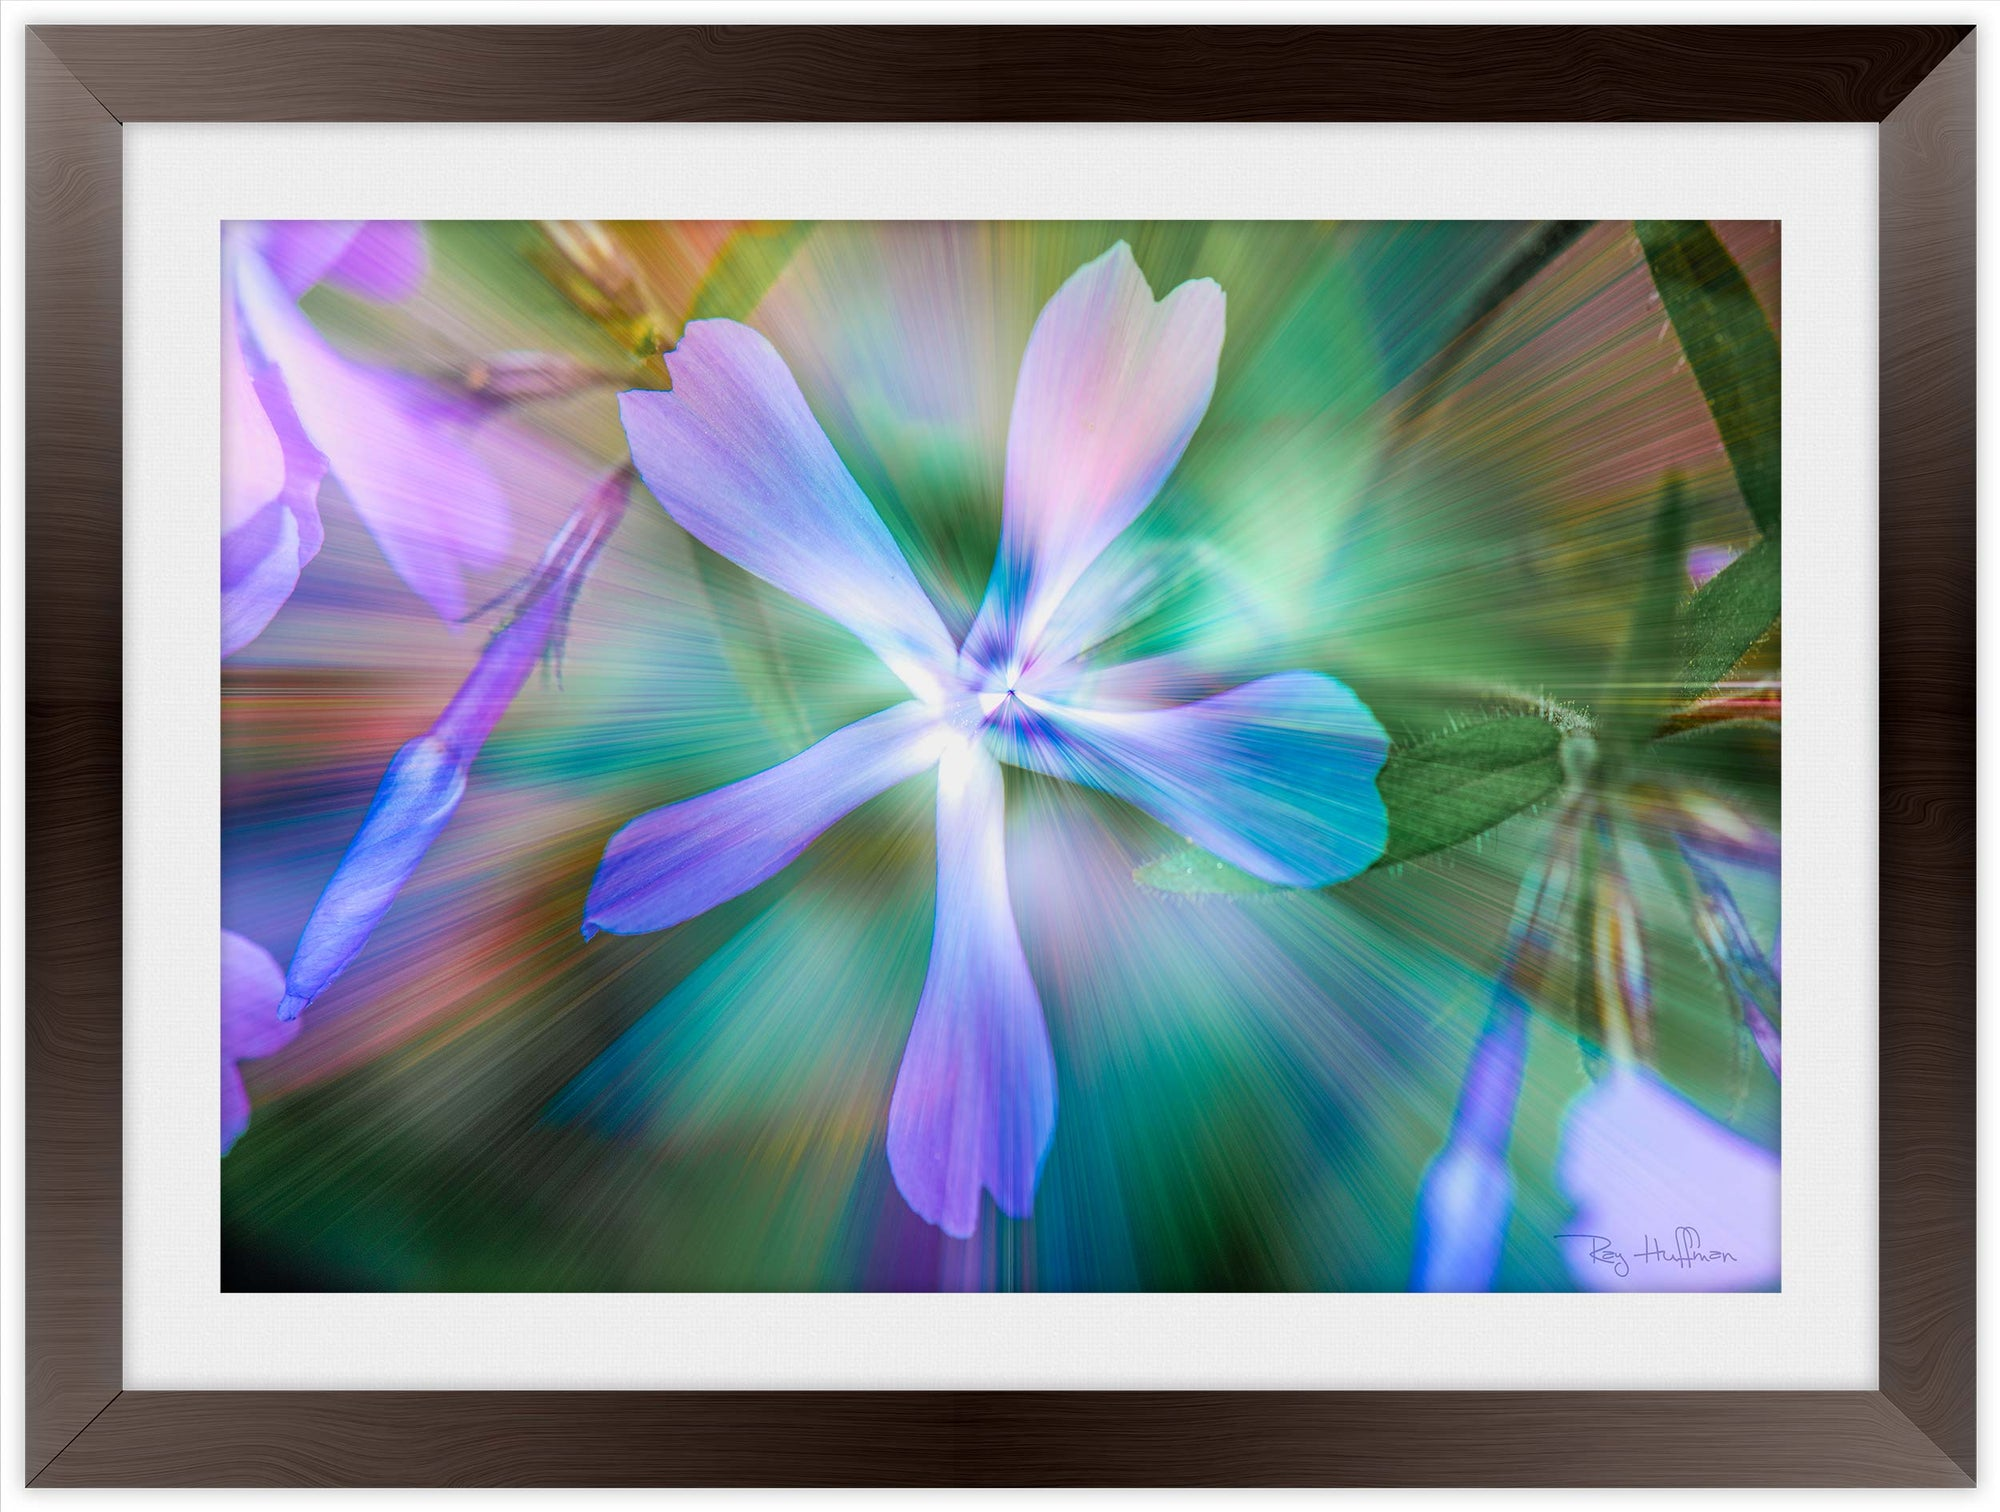 Ethereal Purple Flower - Framed Photography